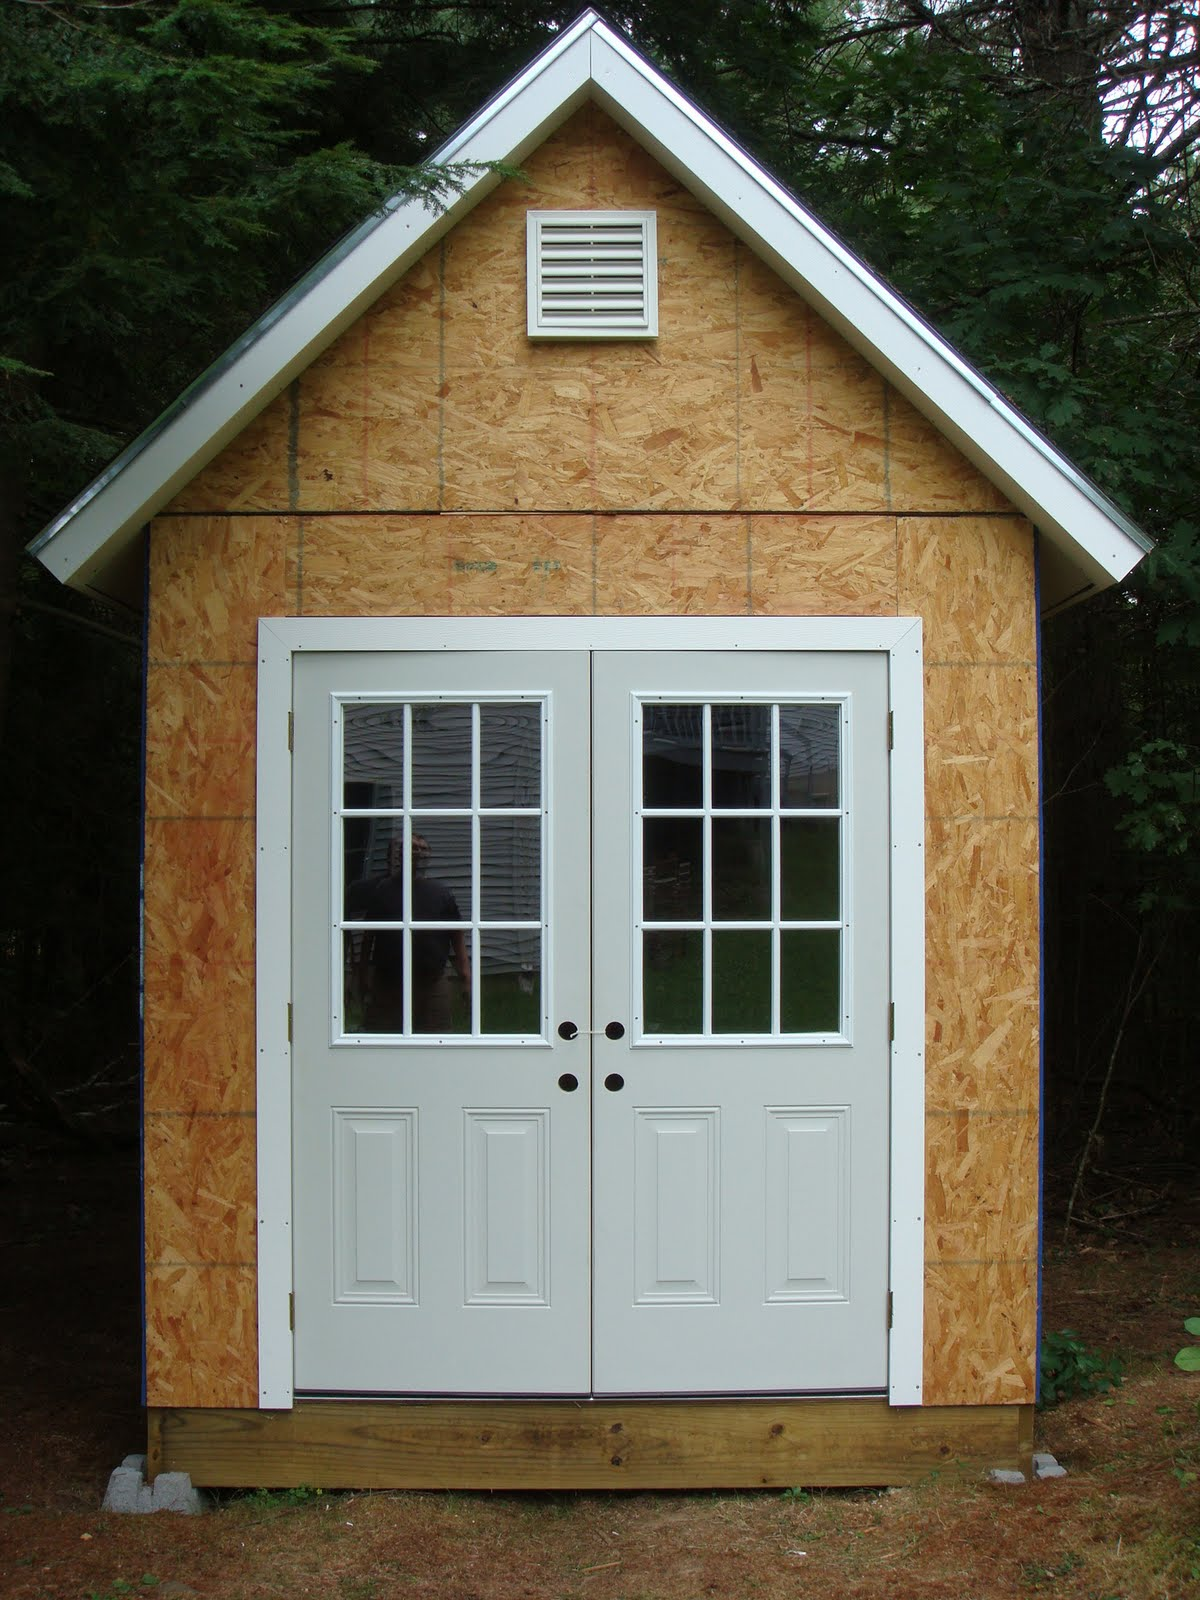 Shed Design Ideas 108 free diy shed plans ideas that you can actually build in your backyard Shed Door Design Shed Door Design Ideas